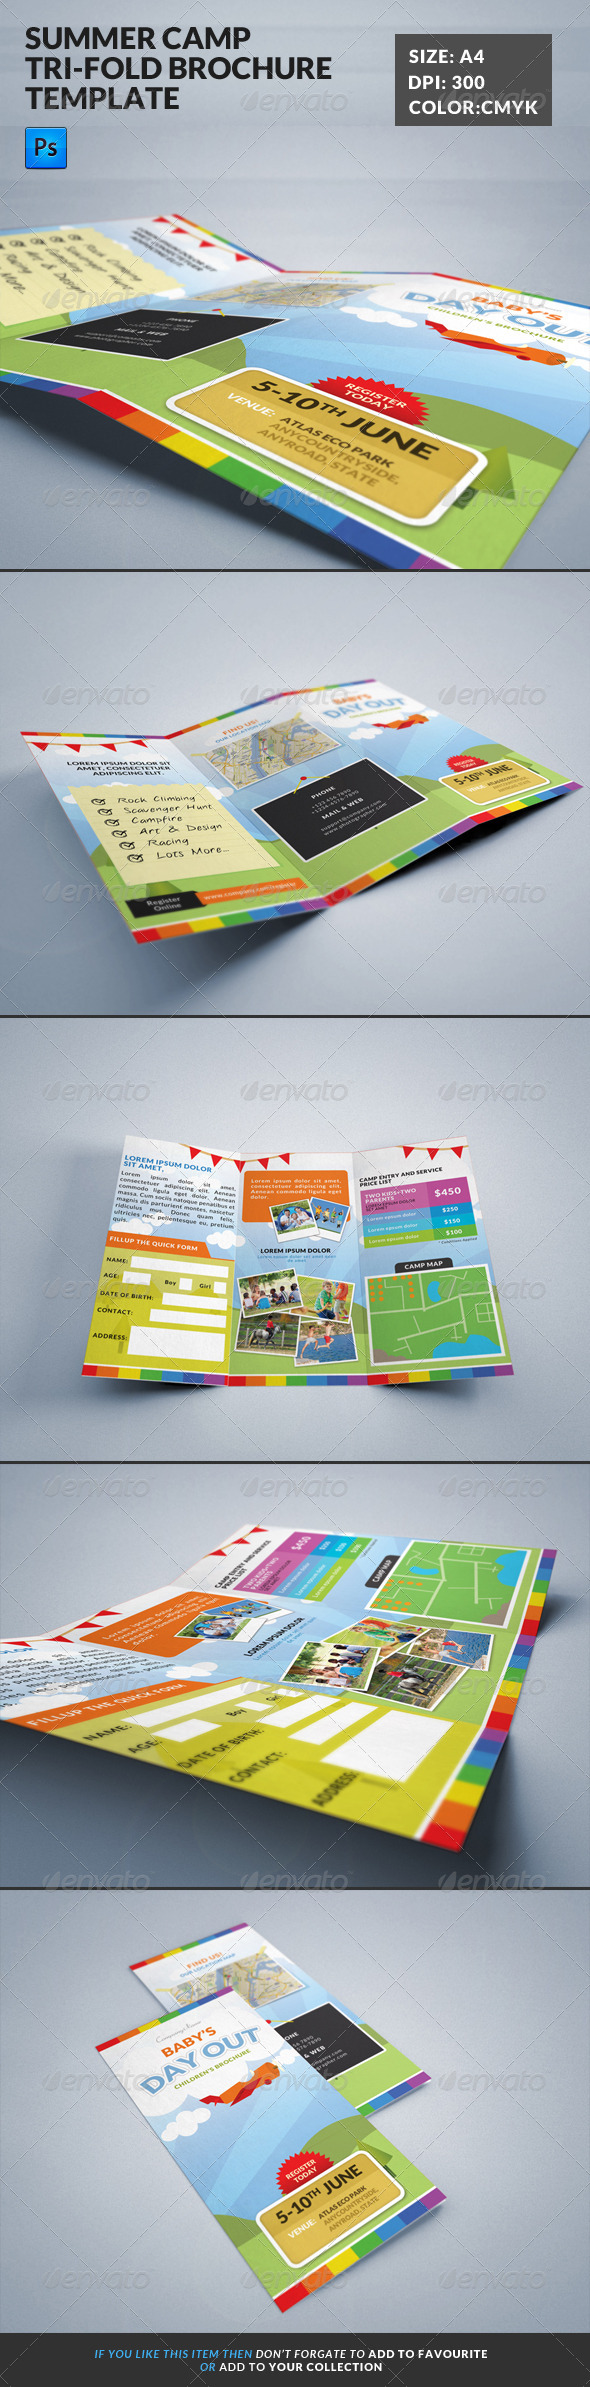 GraphicRiver Summer Camp Kids Tri-Fold Brochure 7828664